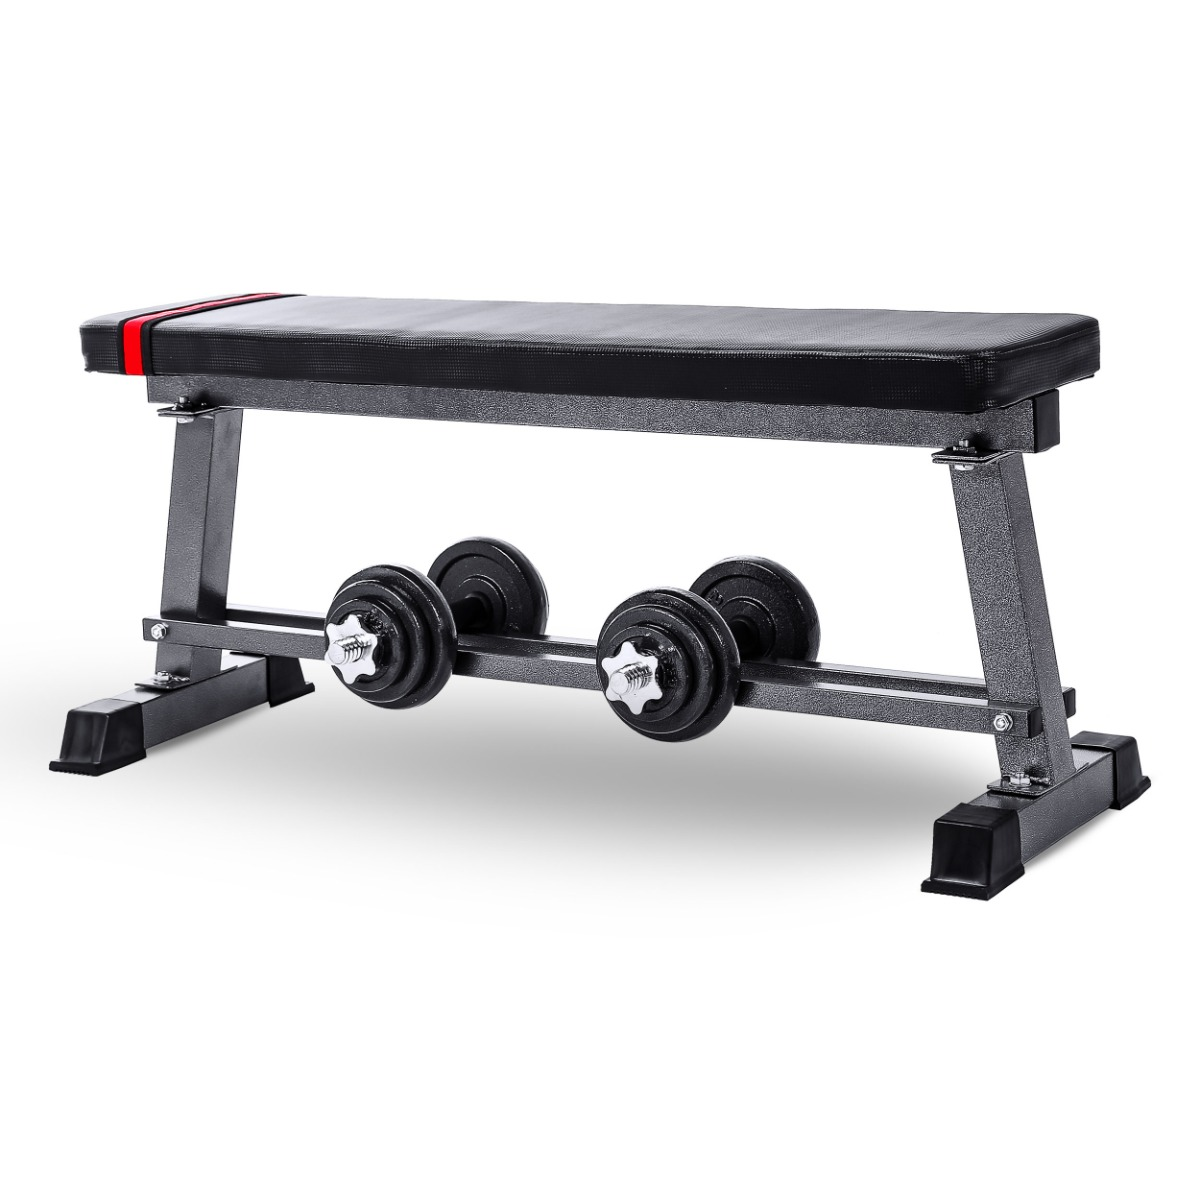 Pleasing Details About Flat Weight Bench Chest Biceps Press Abs Home Gym Fitness Weightlifting Workout Dailytribune Chair Design For Home Dailytribuneorg